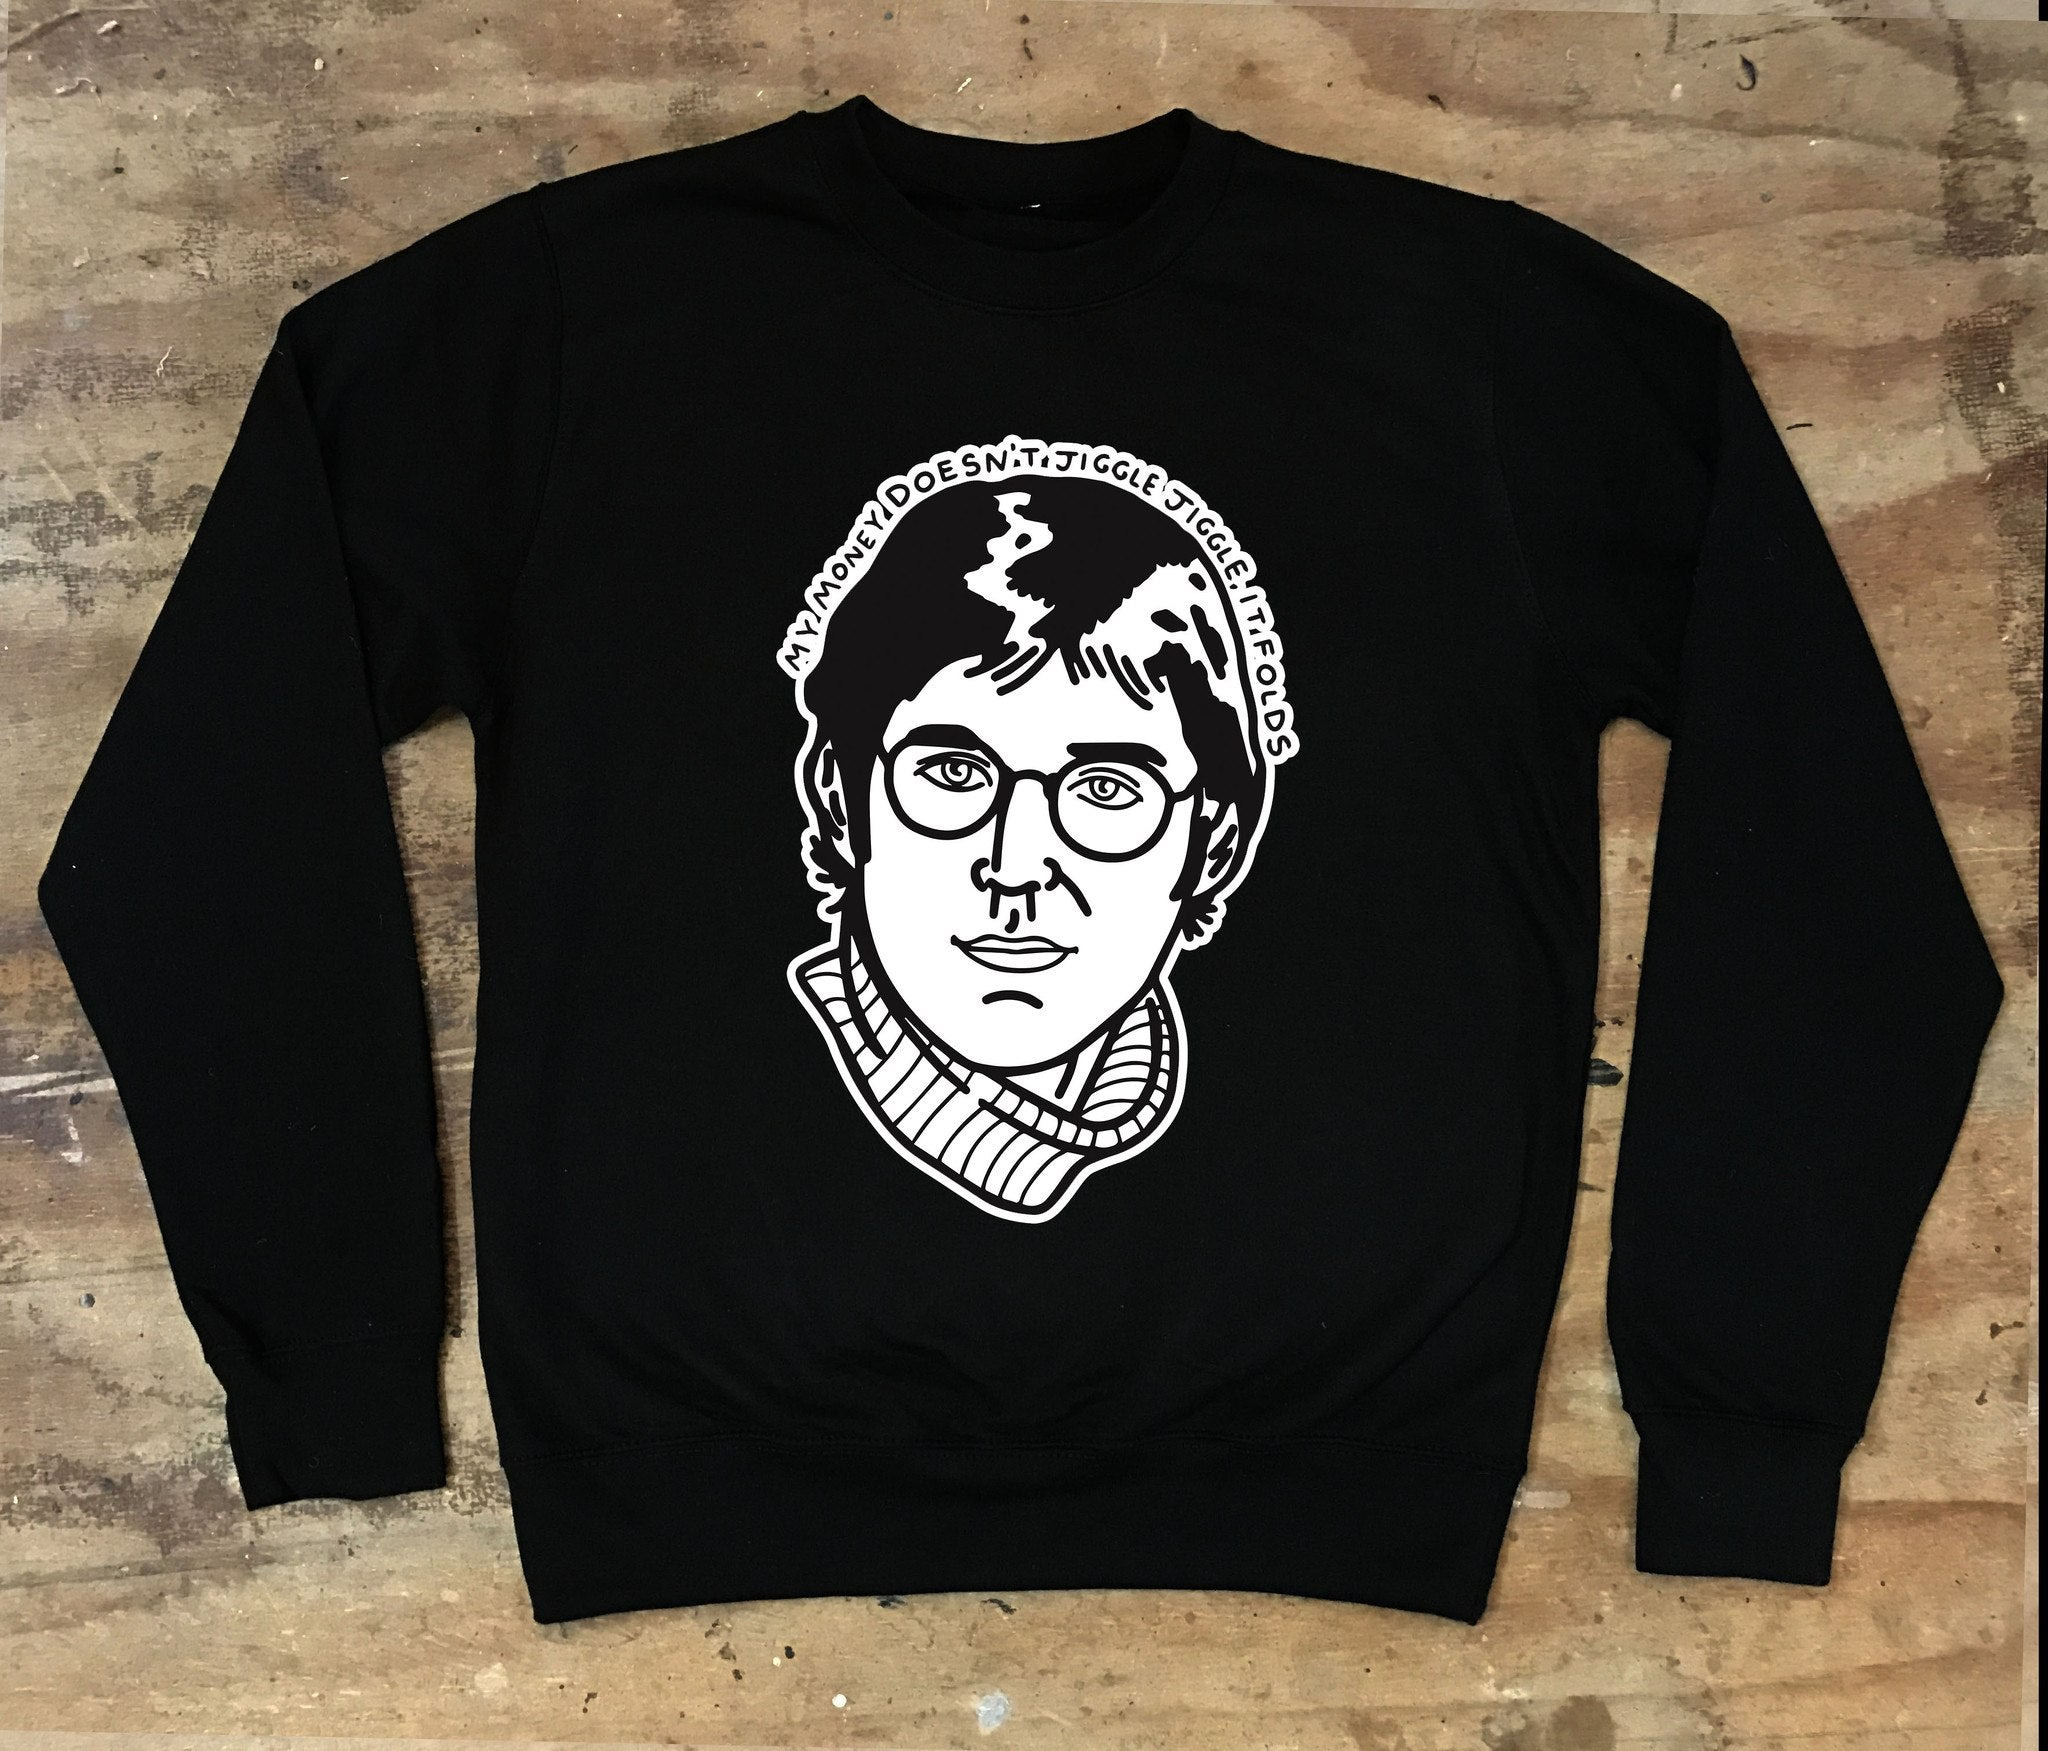 Louis Theroux - My Money Doesn't Jiggle Jiggle It Folds Crew neck Sweater - Jiggle Apparel